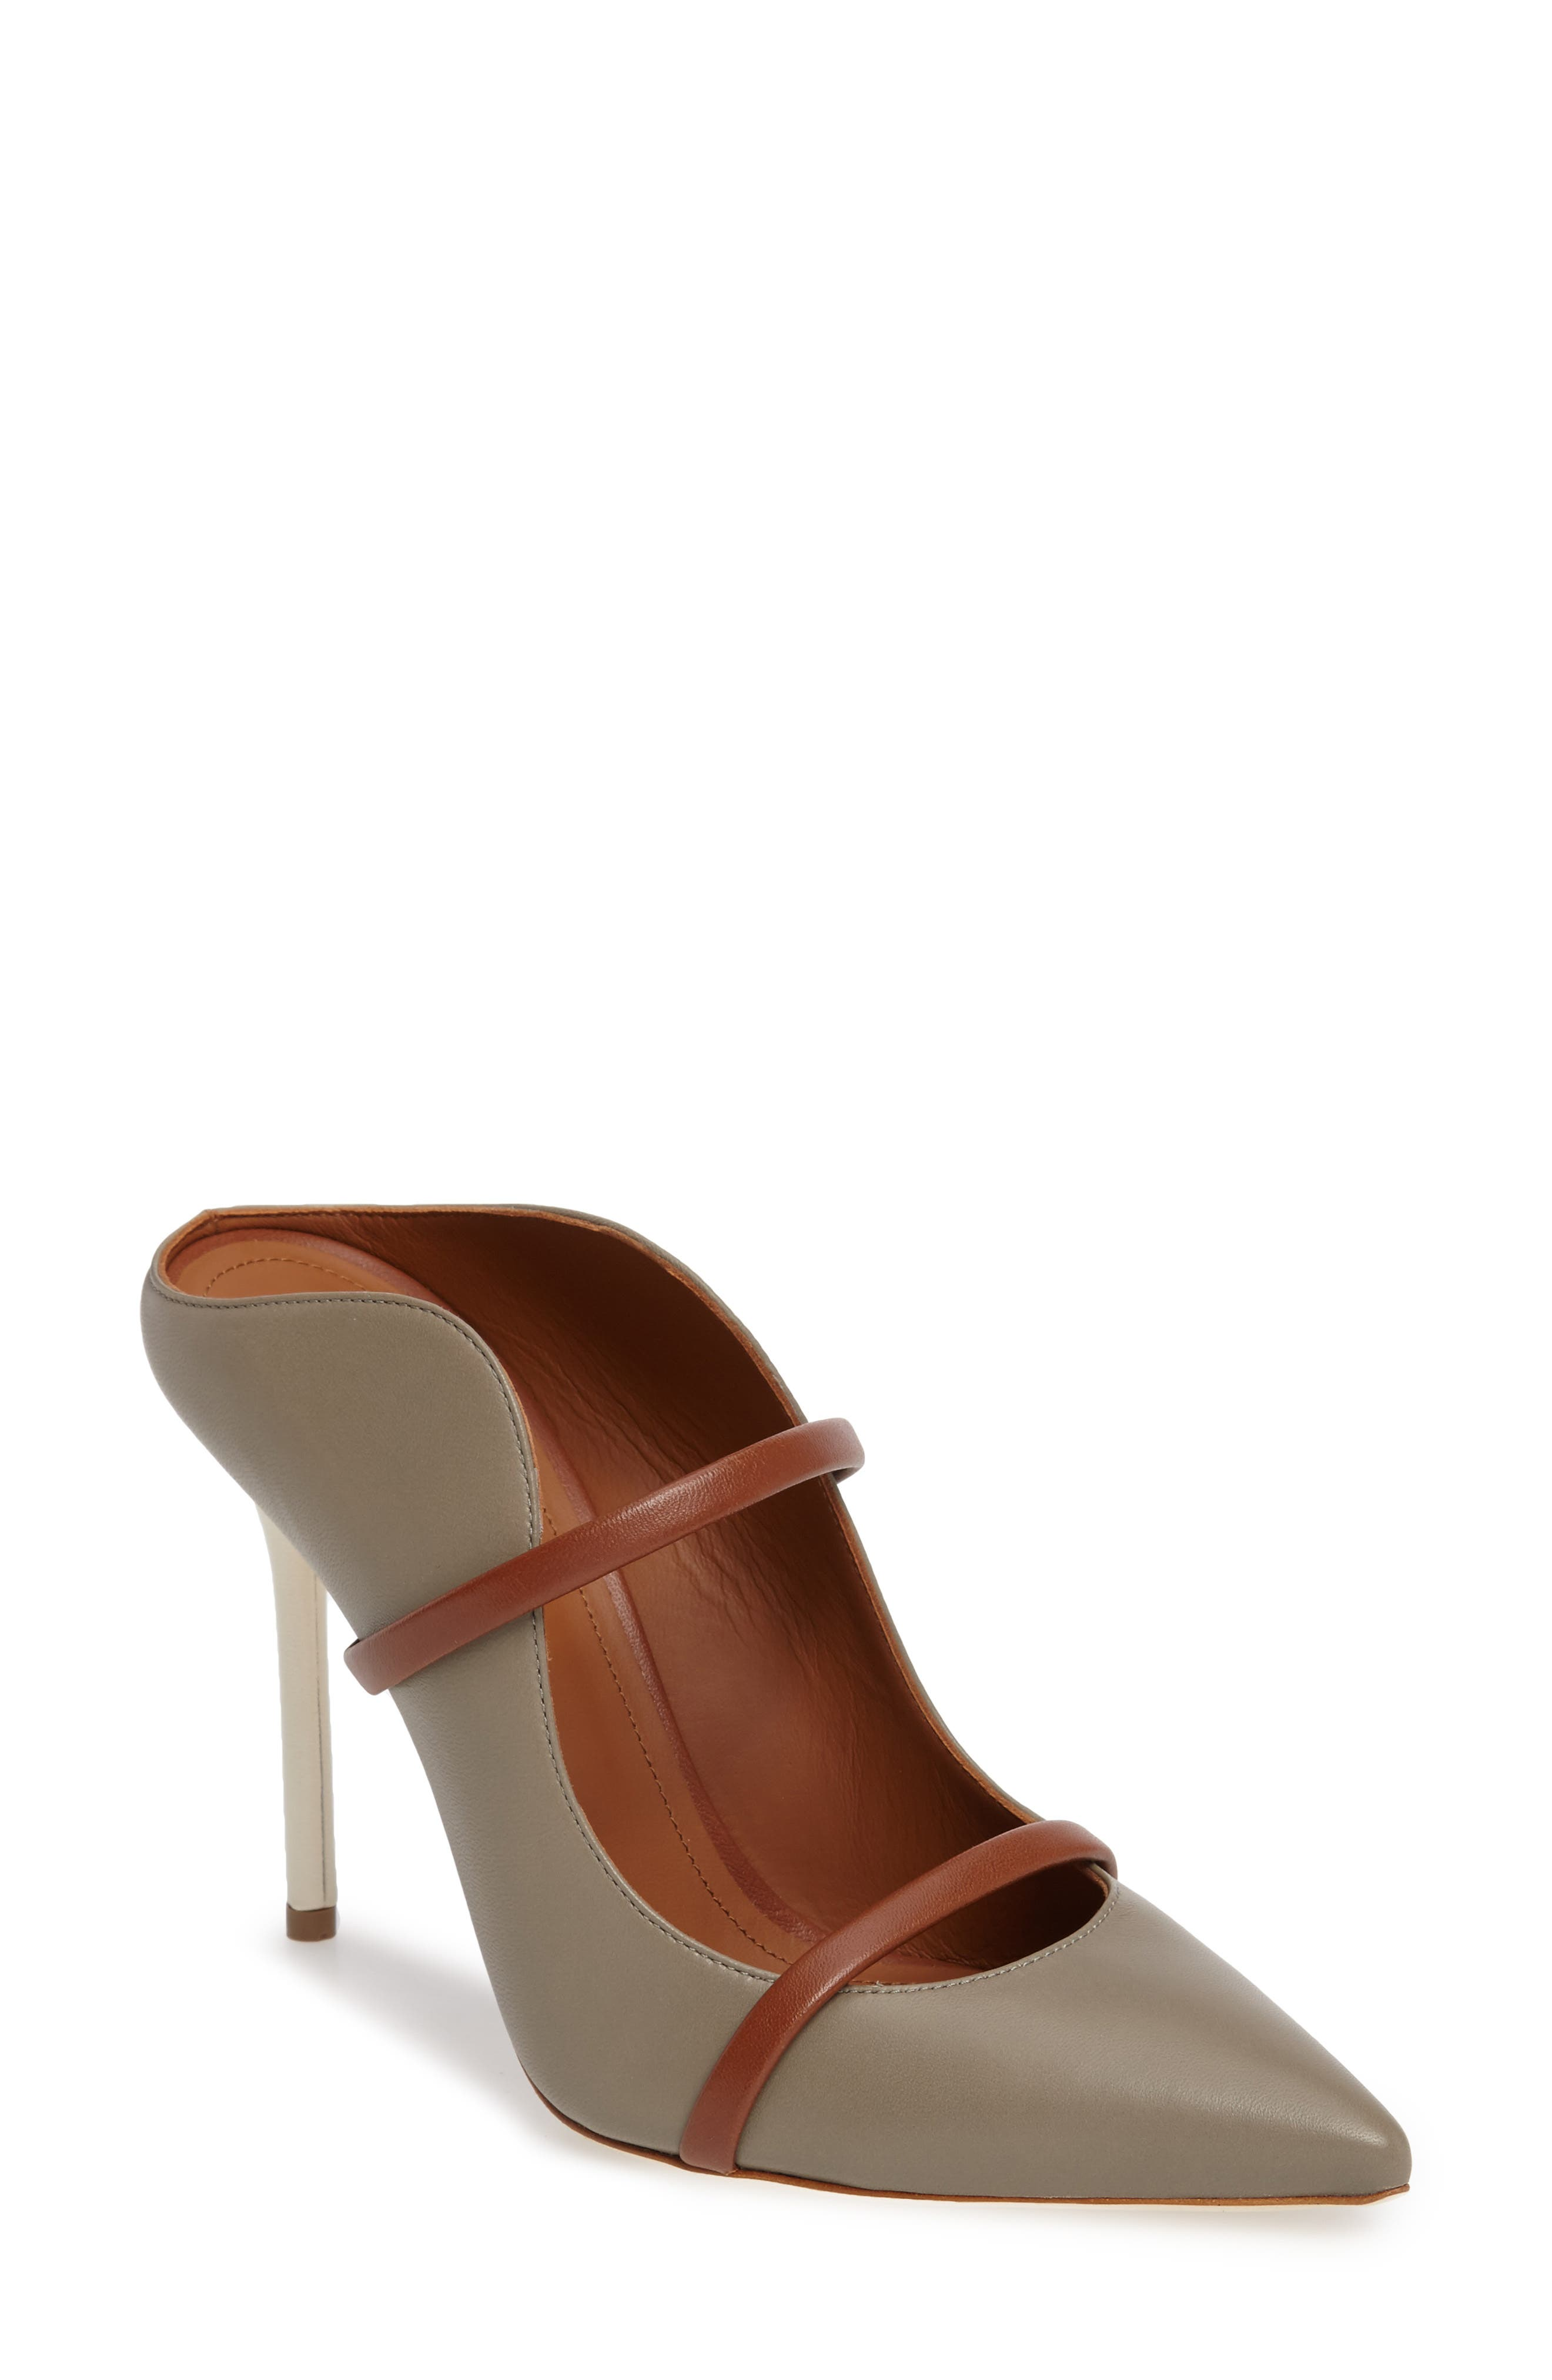 'Maureen' Pointy Toe Mule,                             Alternate thumbnail 6, color,